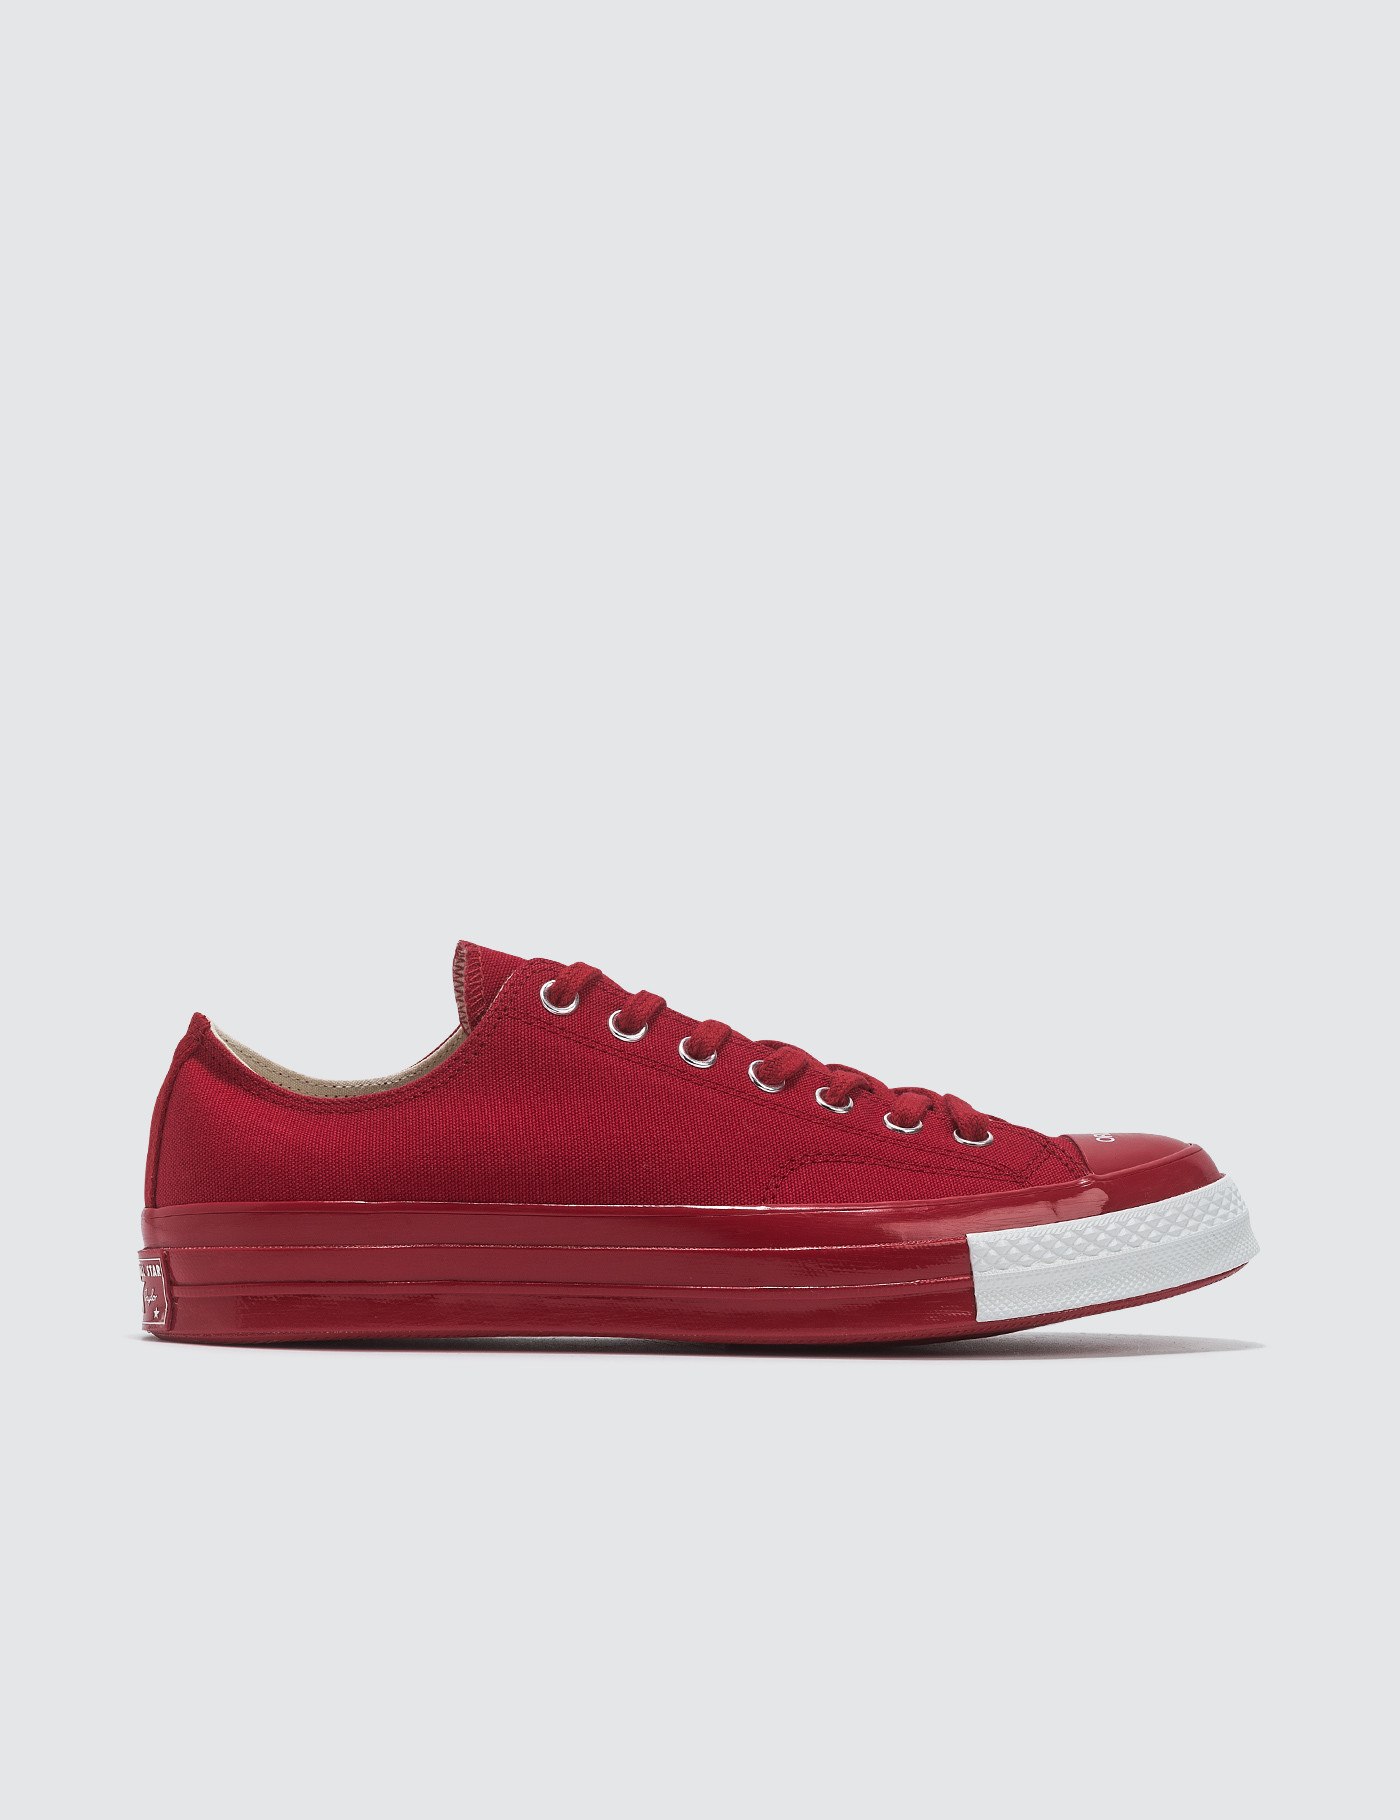 Buy Original Converse Undercover x Chuck 70 OX at Indonesia  41af827490566